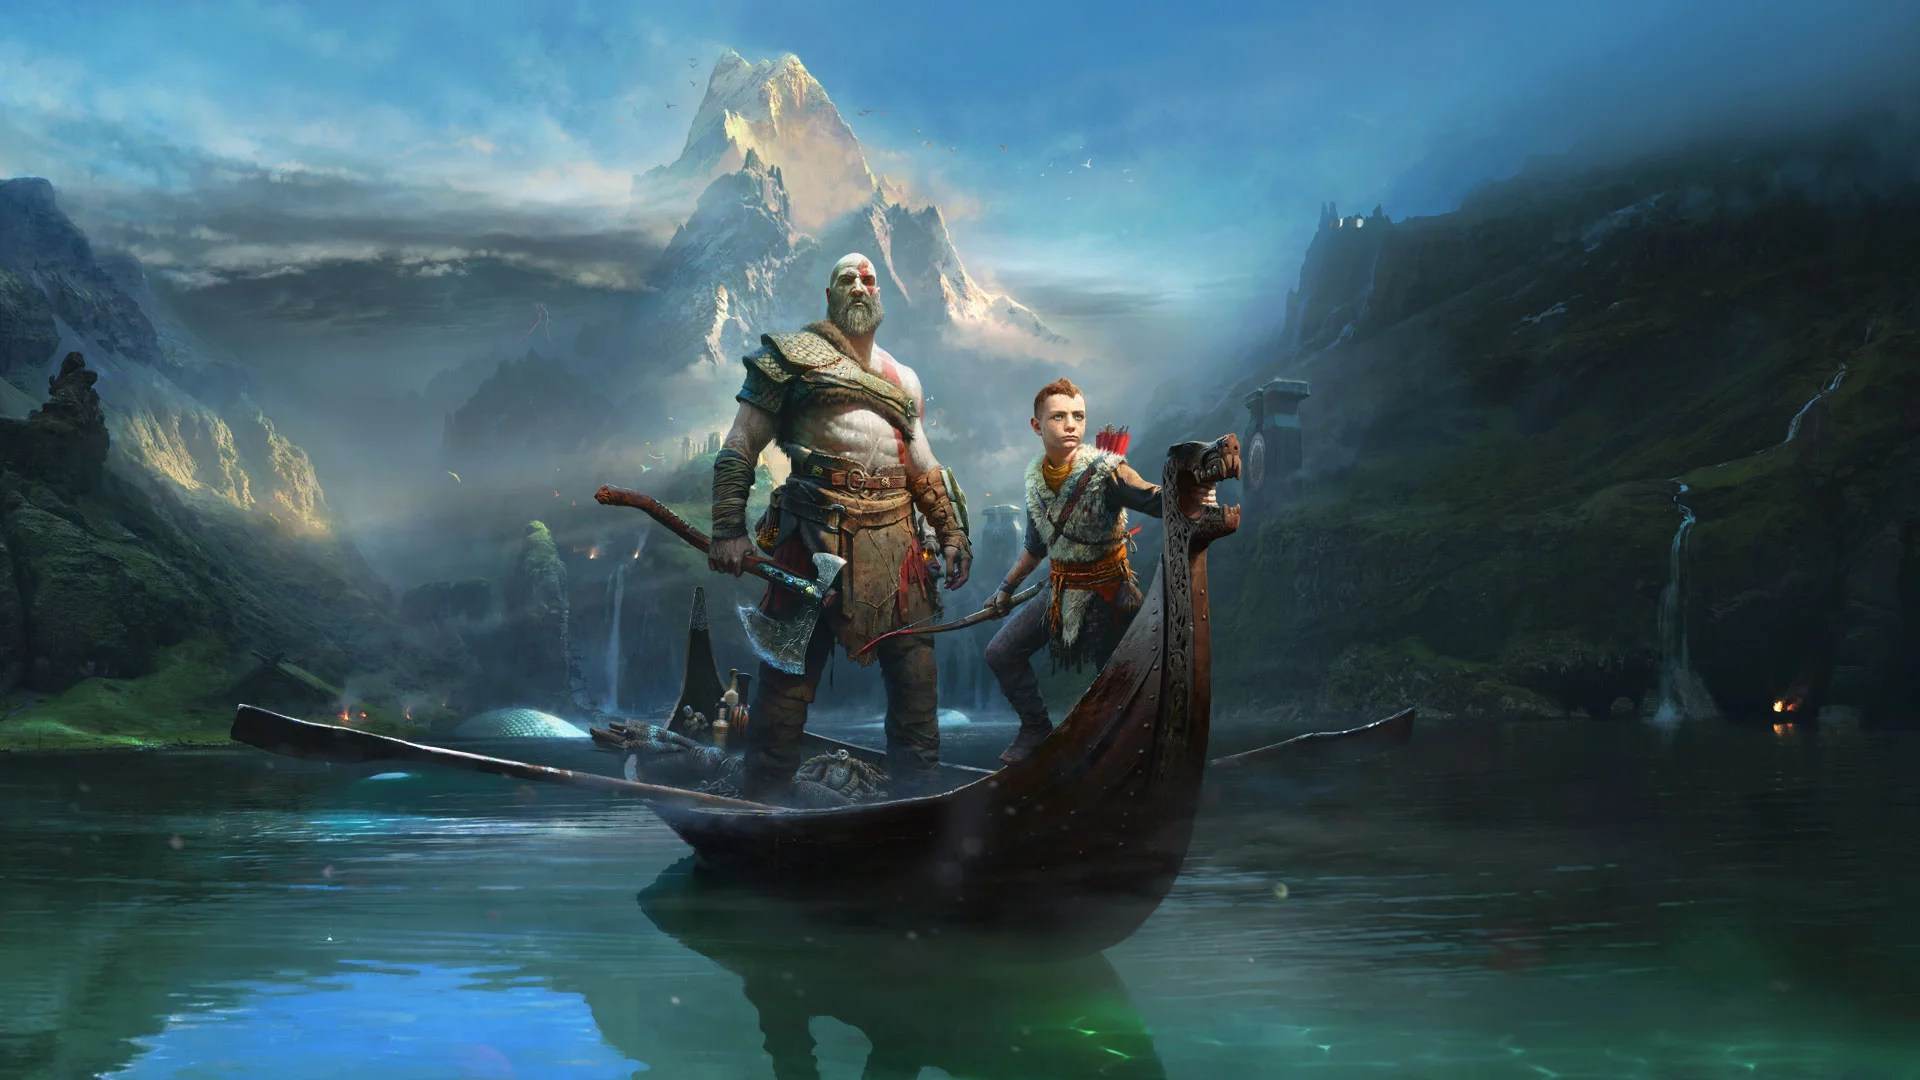 God Of War Wheres Cheapest To Buy It Trusted Reviews